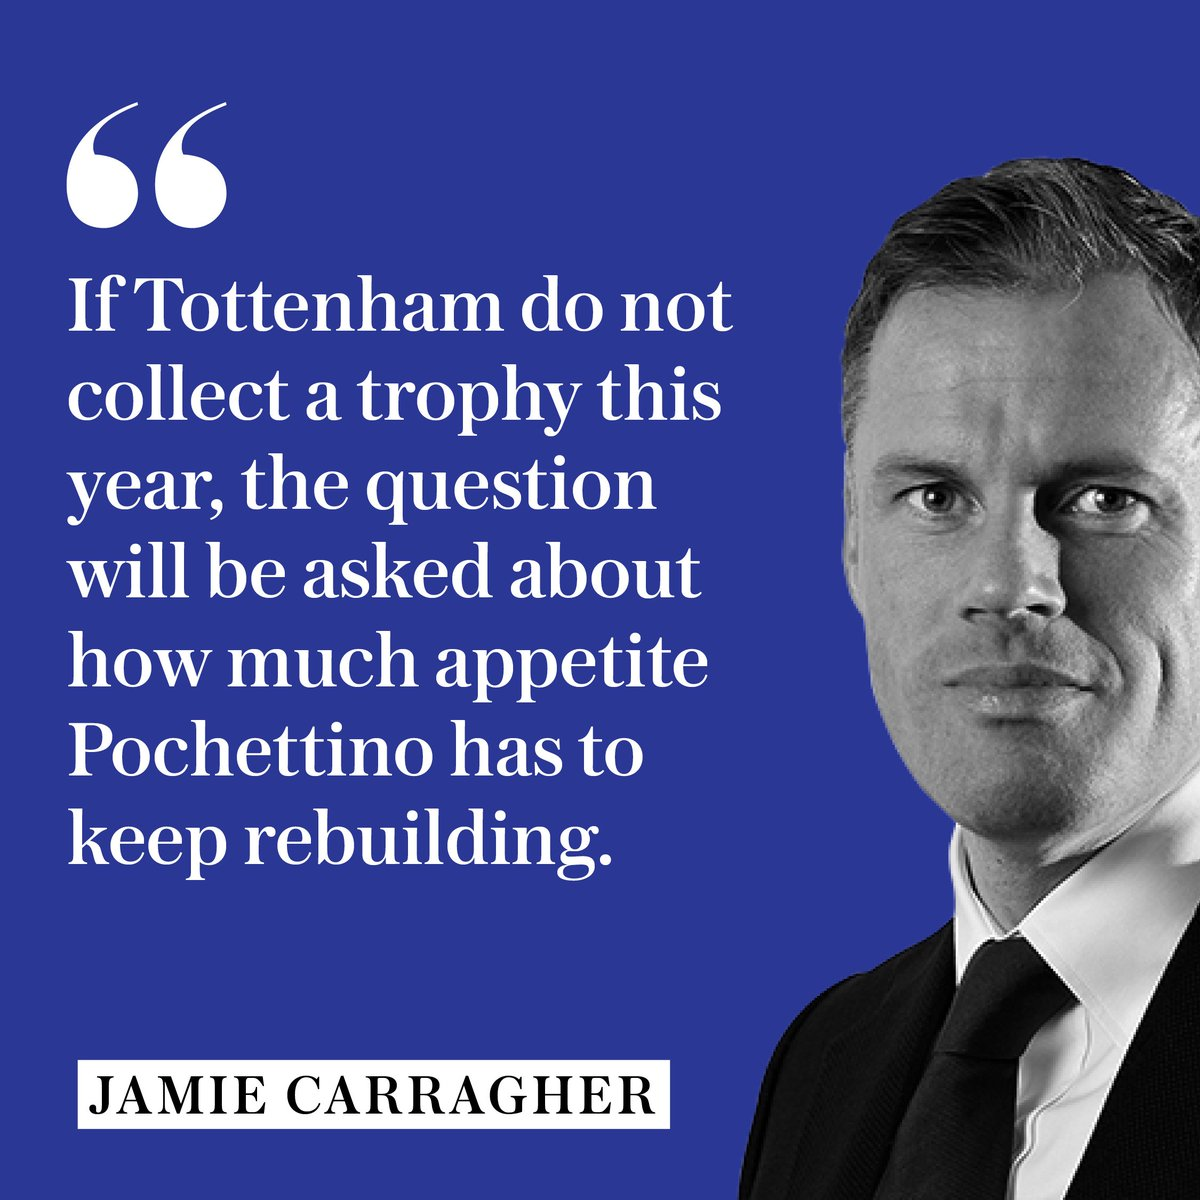 Jamie Carragher: Christian Eriksen is not at Real or Barcas level - losing Harry Kane would be far more damaging #THFC telegraph.co.uk/football/2019/…